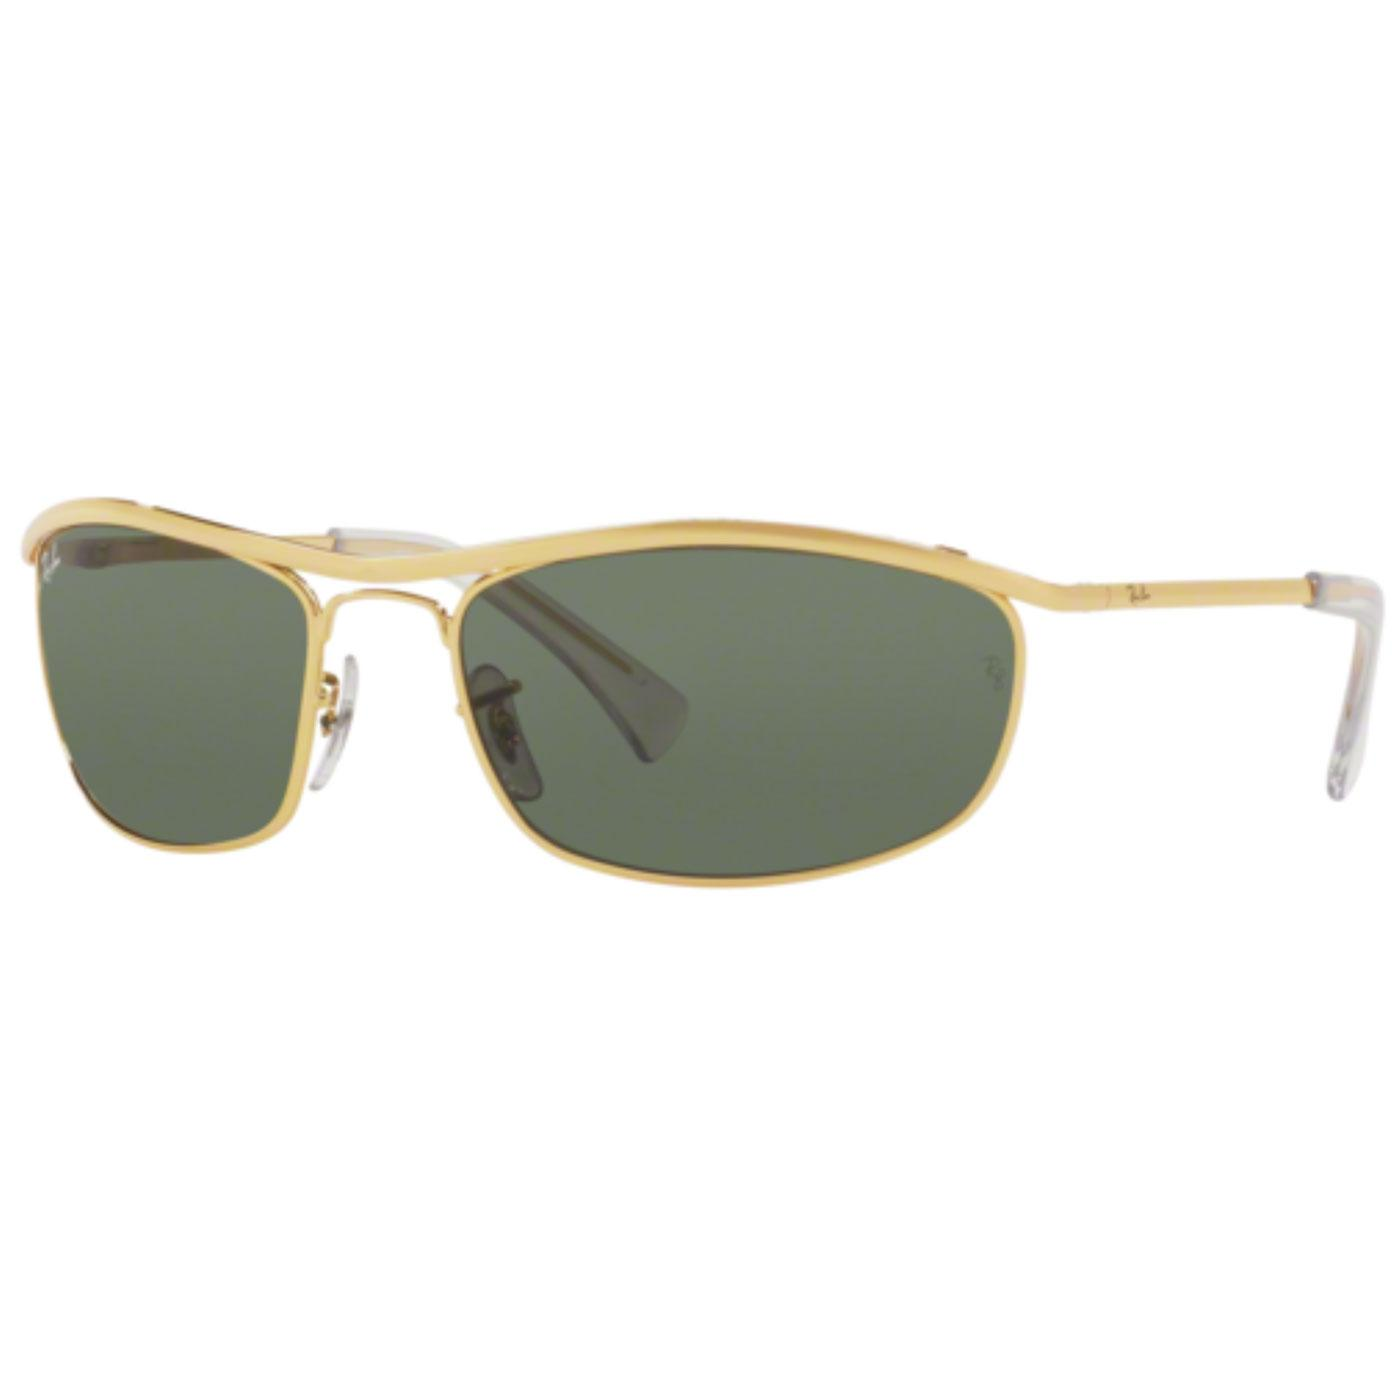 Olympian Ray-Ban Retro 60s Mod Icons Sunglasses G